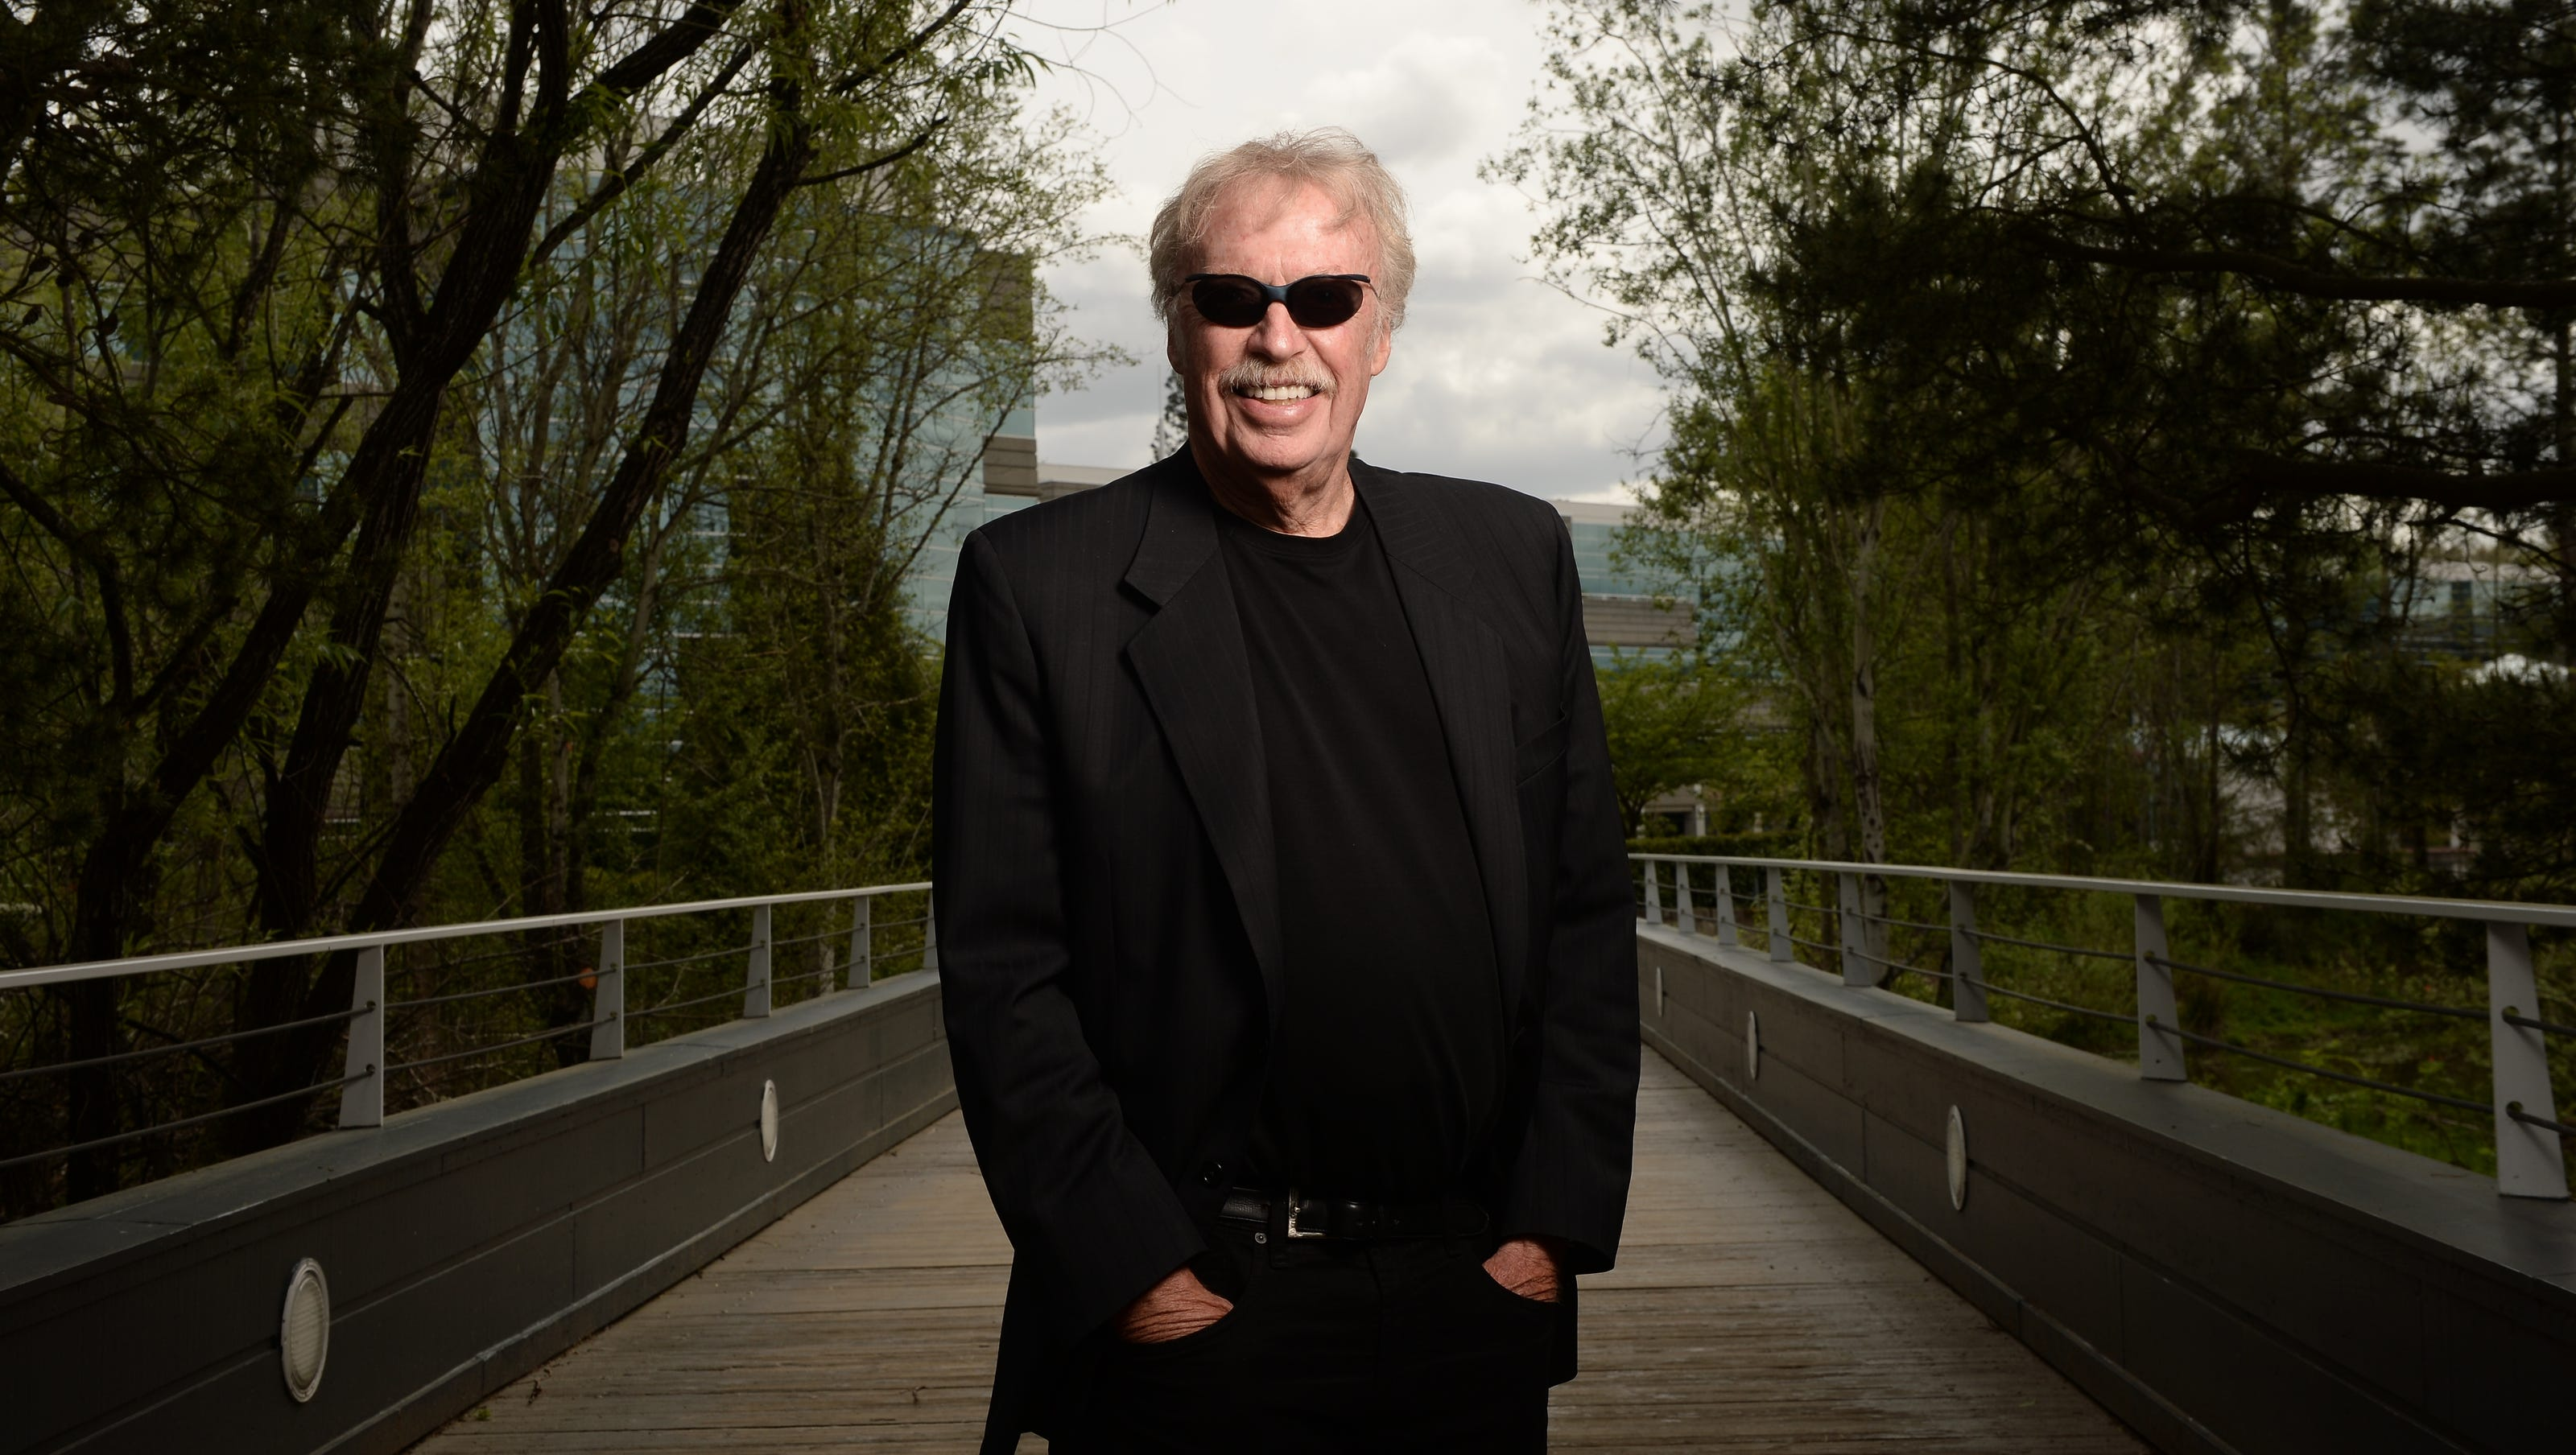 Pasado Nueve Pórtico  Nike founder Phil Knight worries that nation is losing its entrepreneurial  edge